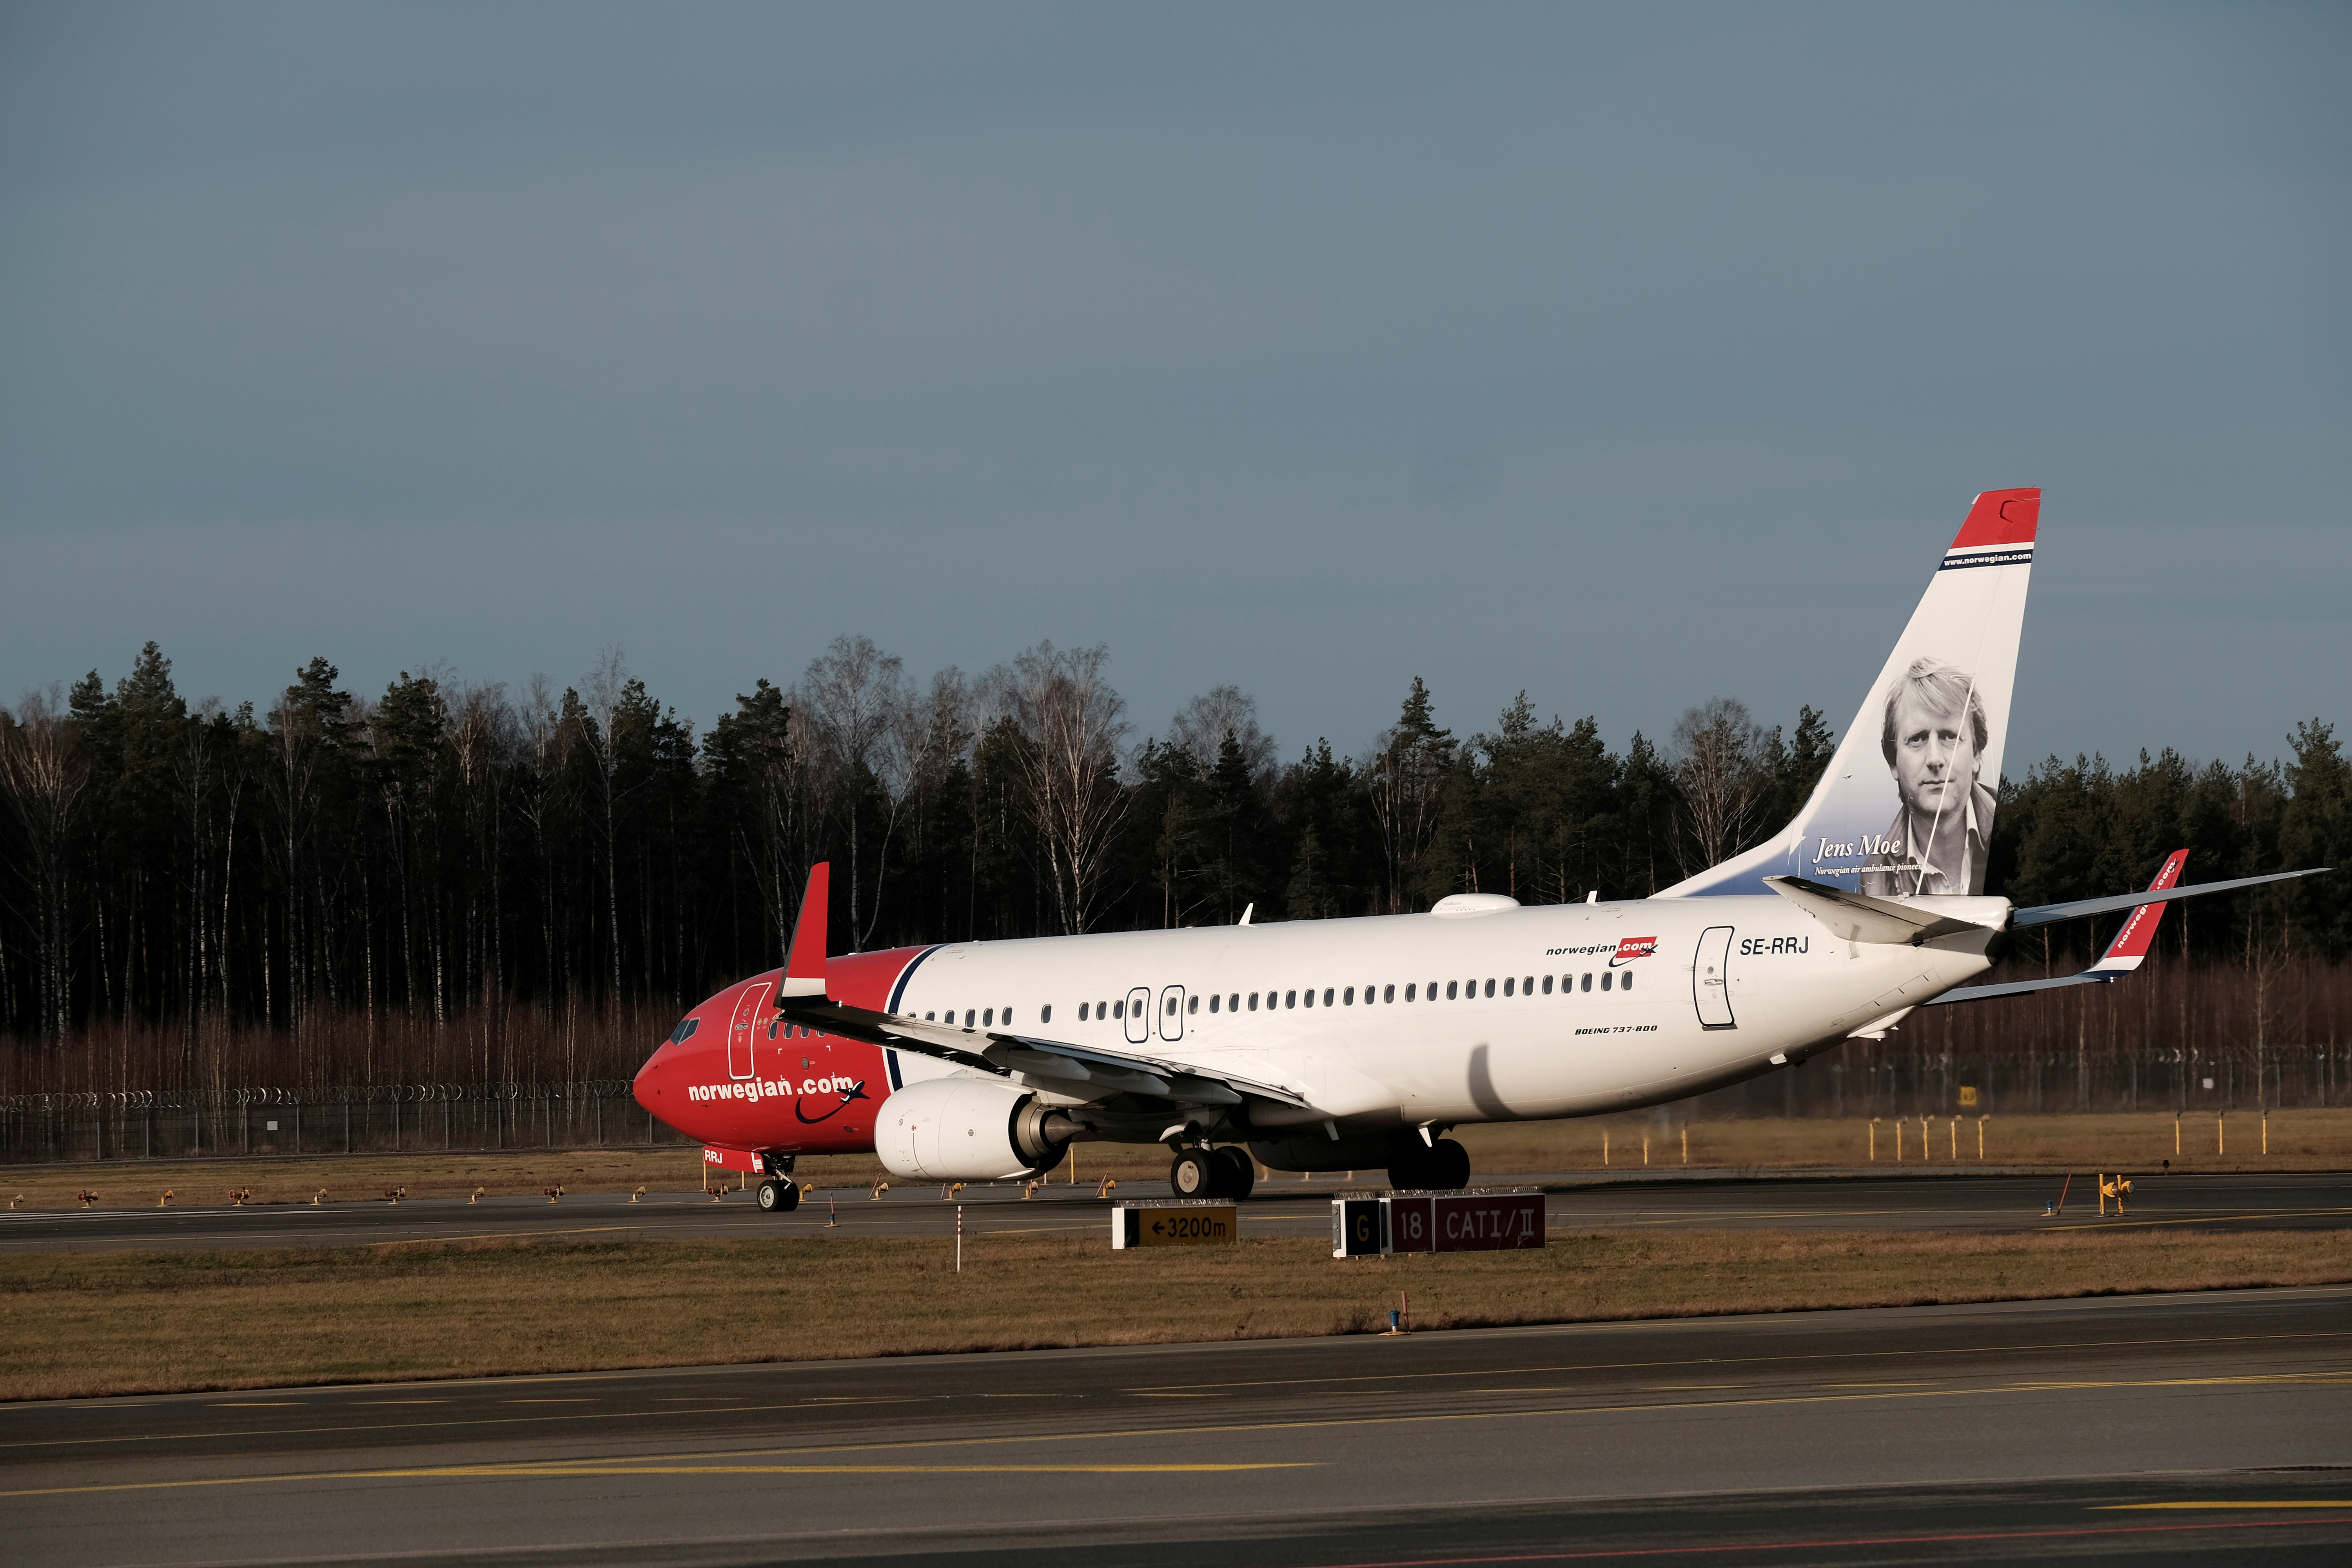 Norwegian Air Sweden Boeing 737-800 plane SE-RRJ taxies to take-off in Riga International Airport in Riga, Latvia January 17, 2020. REUTERS/Ints Kalnins/File Photo